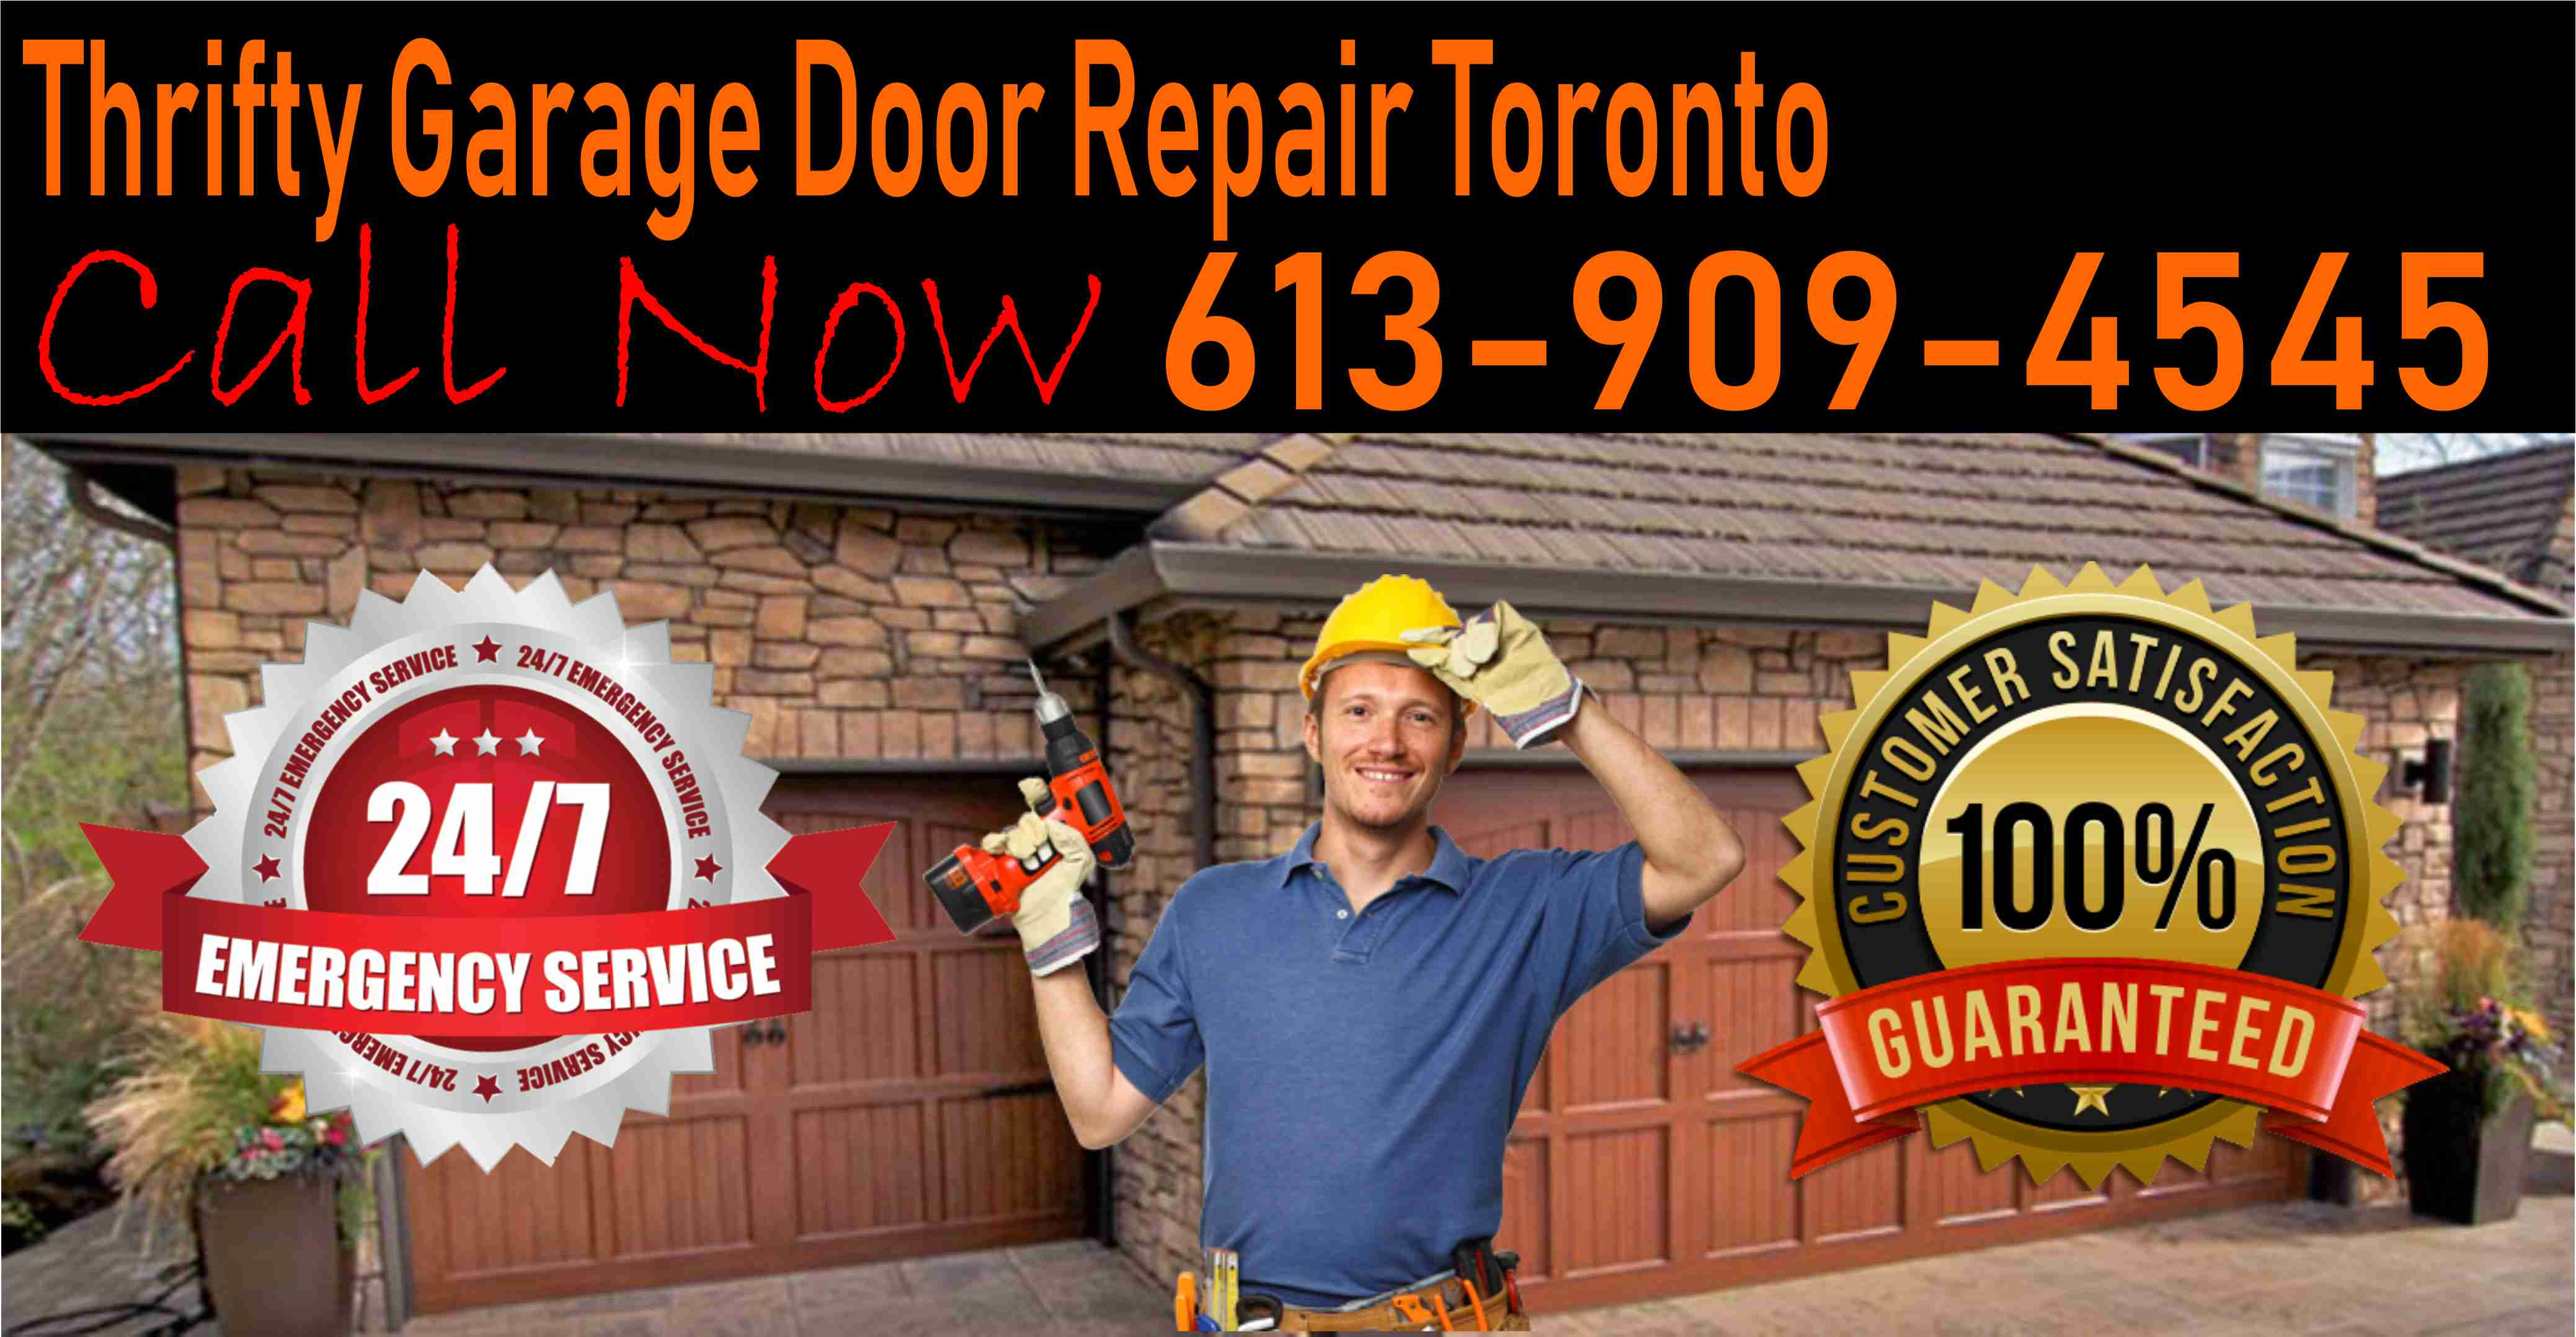 Best garage Door Repair Toronto